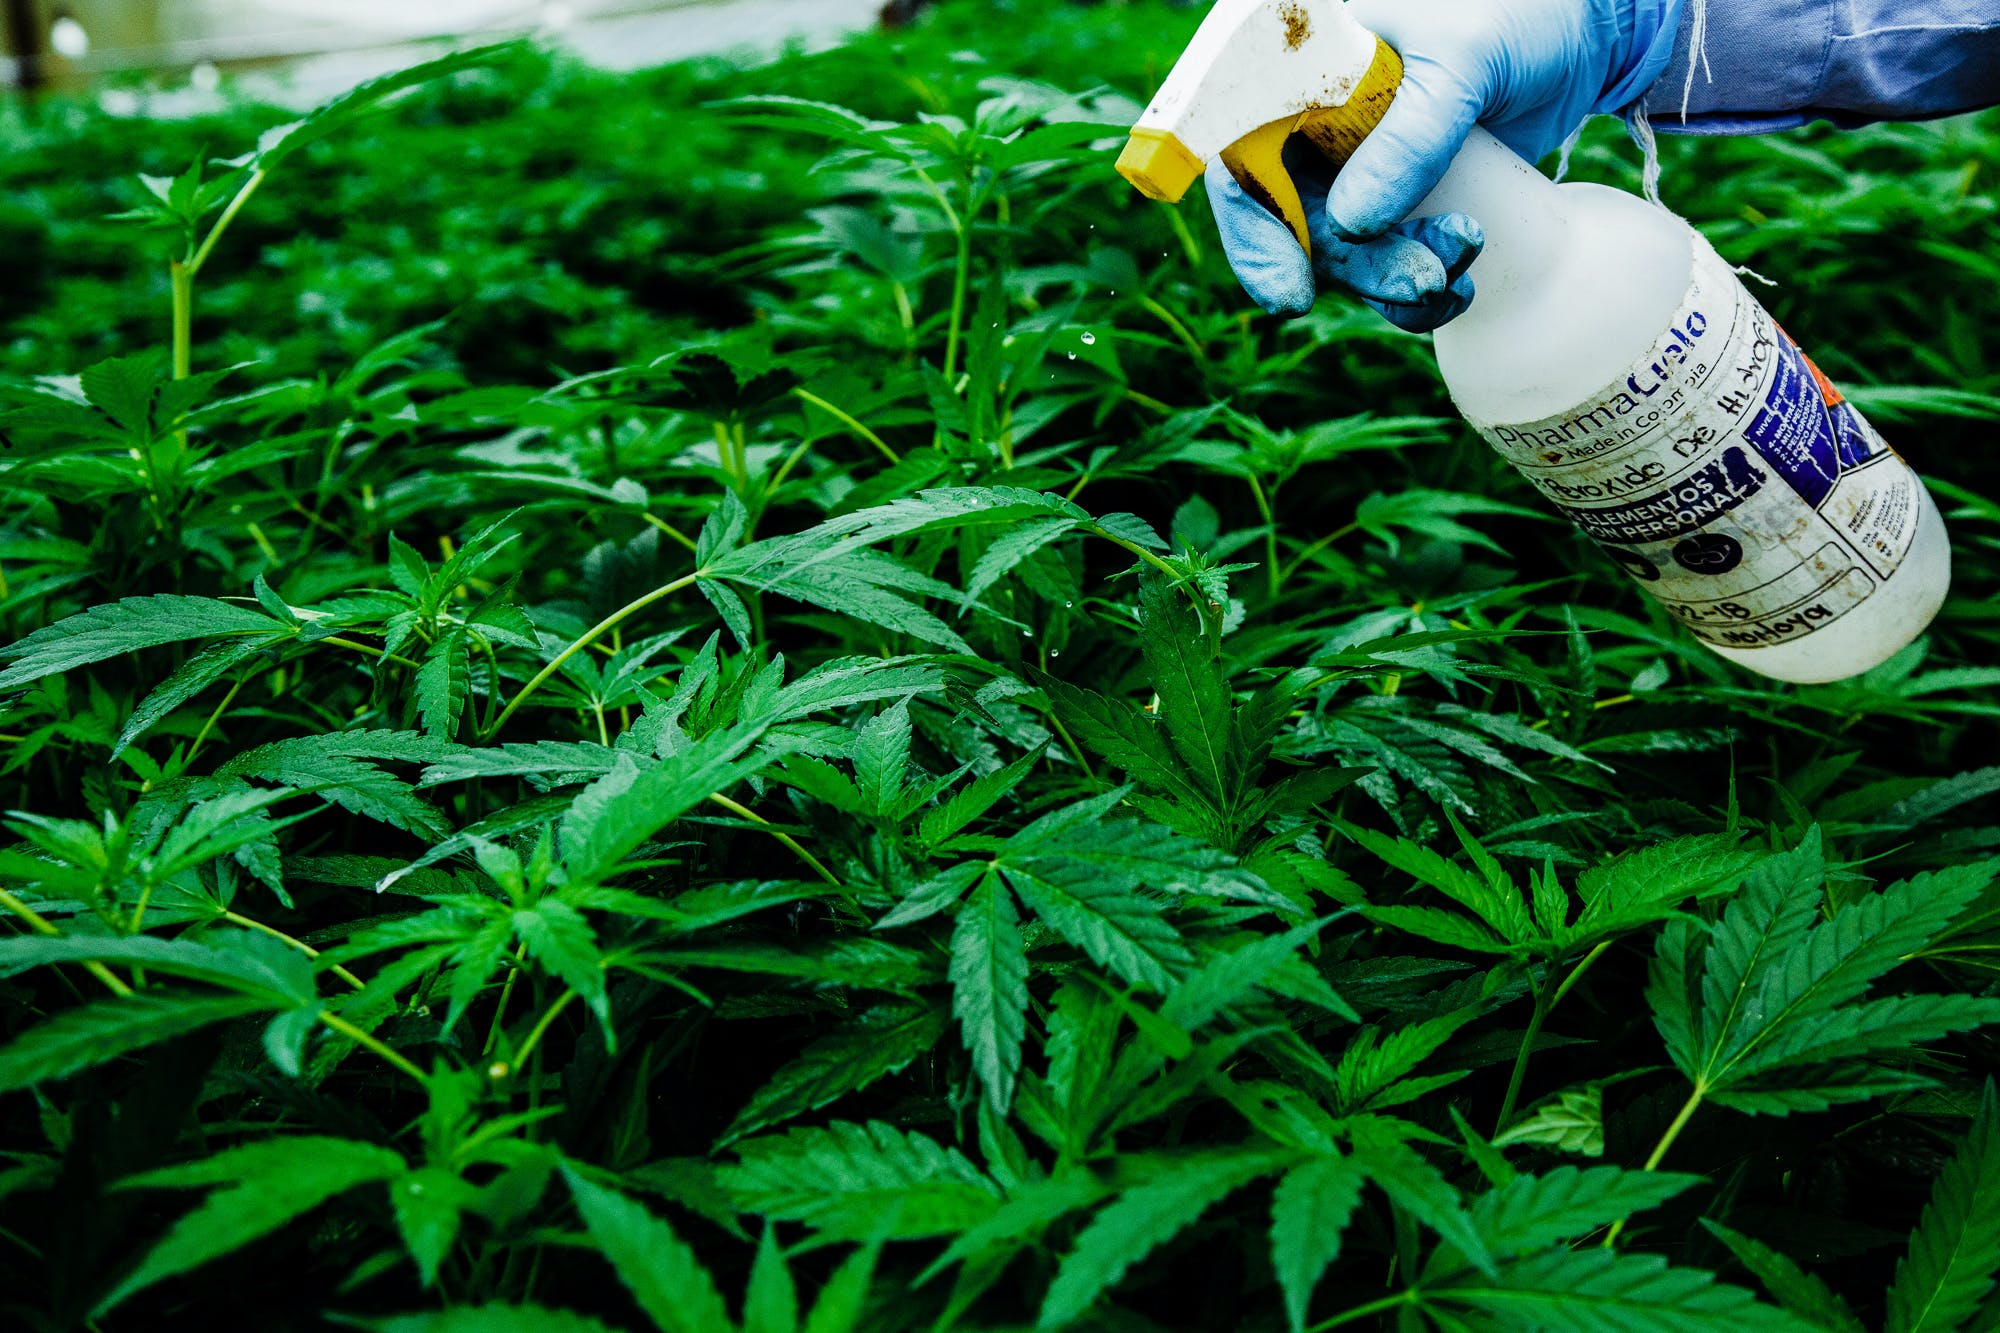 Pharmacielo could become a leader in the global medical cannabis market 13 Cannabis Consumers Would Rather Pay a Premium Than Buy Product From the Black Market: Study